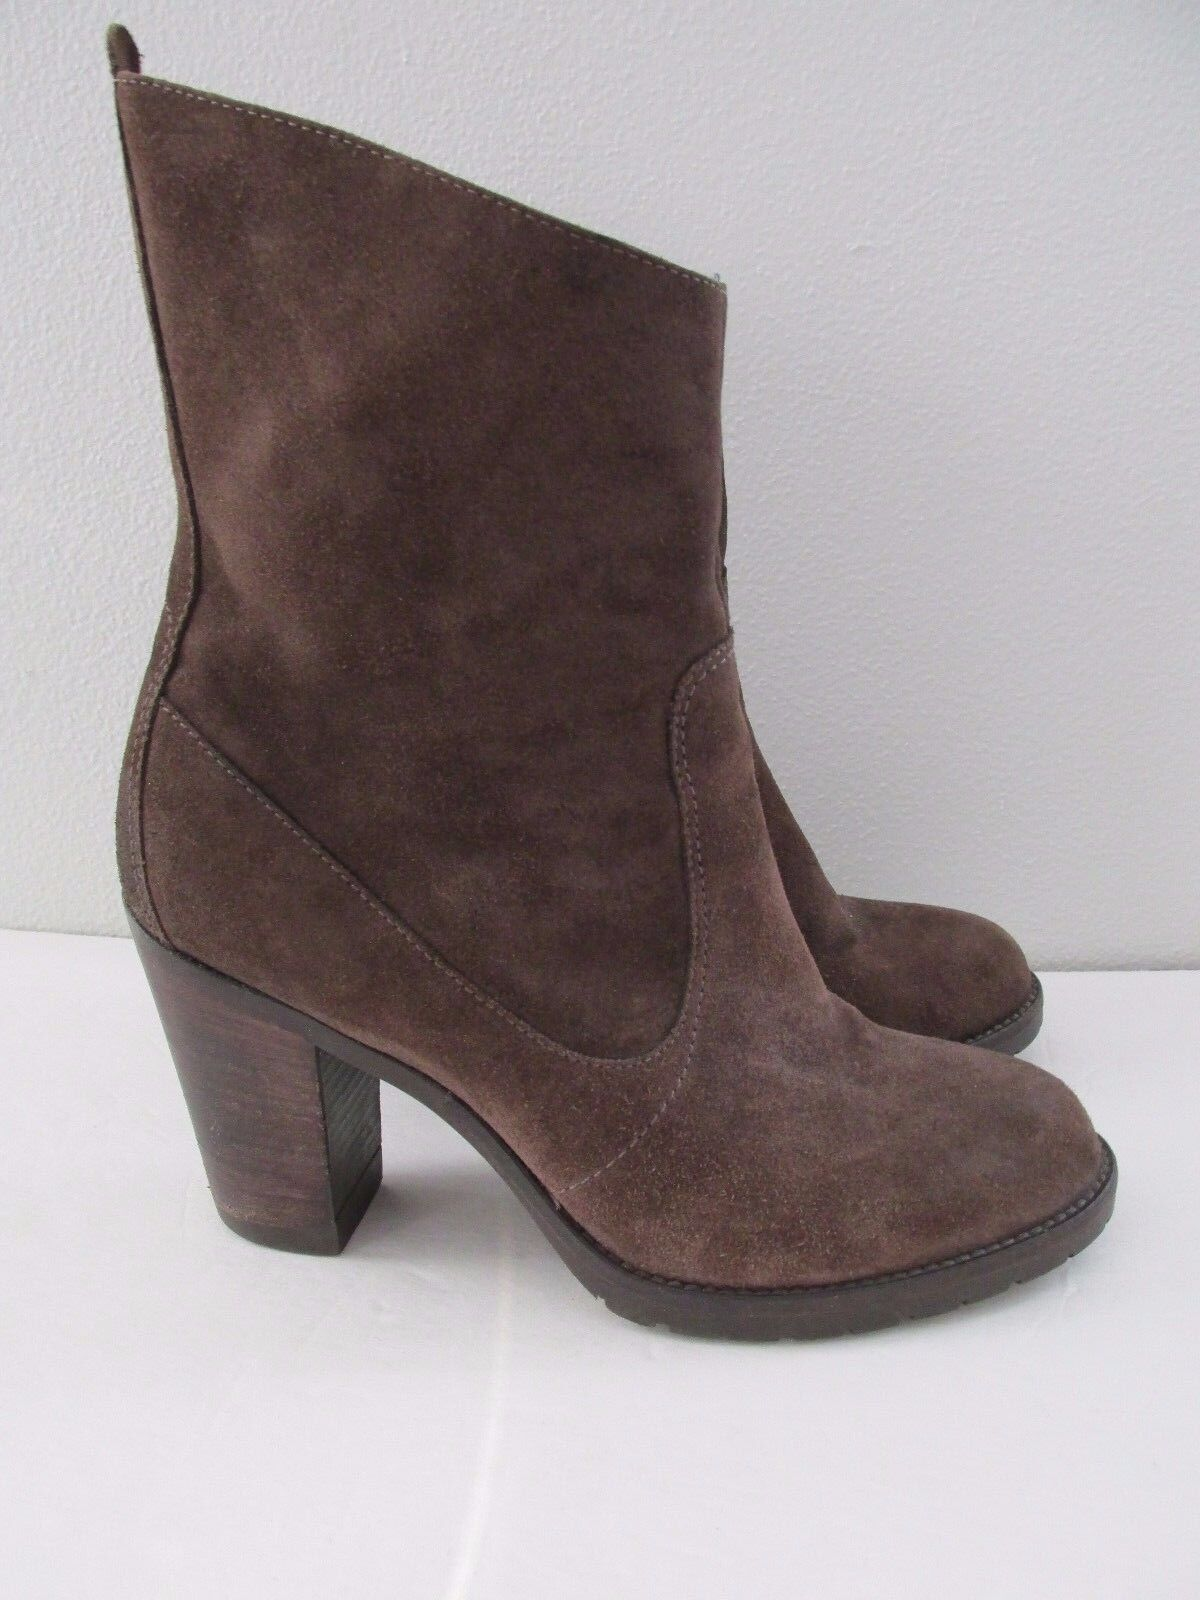 Tremp Made in  Größe 39 8.5 braun Suede Leather Ankle Chunky Heel Stiefel